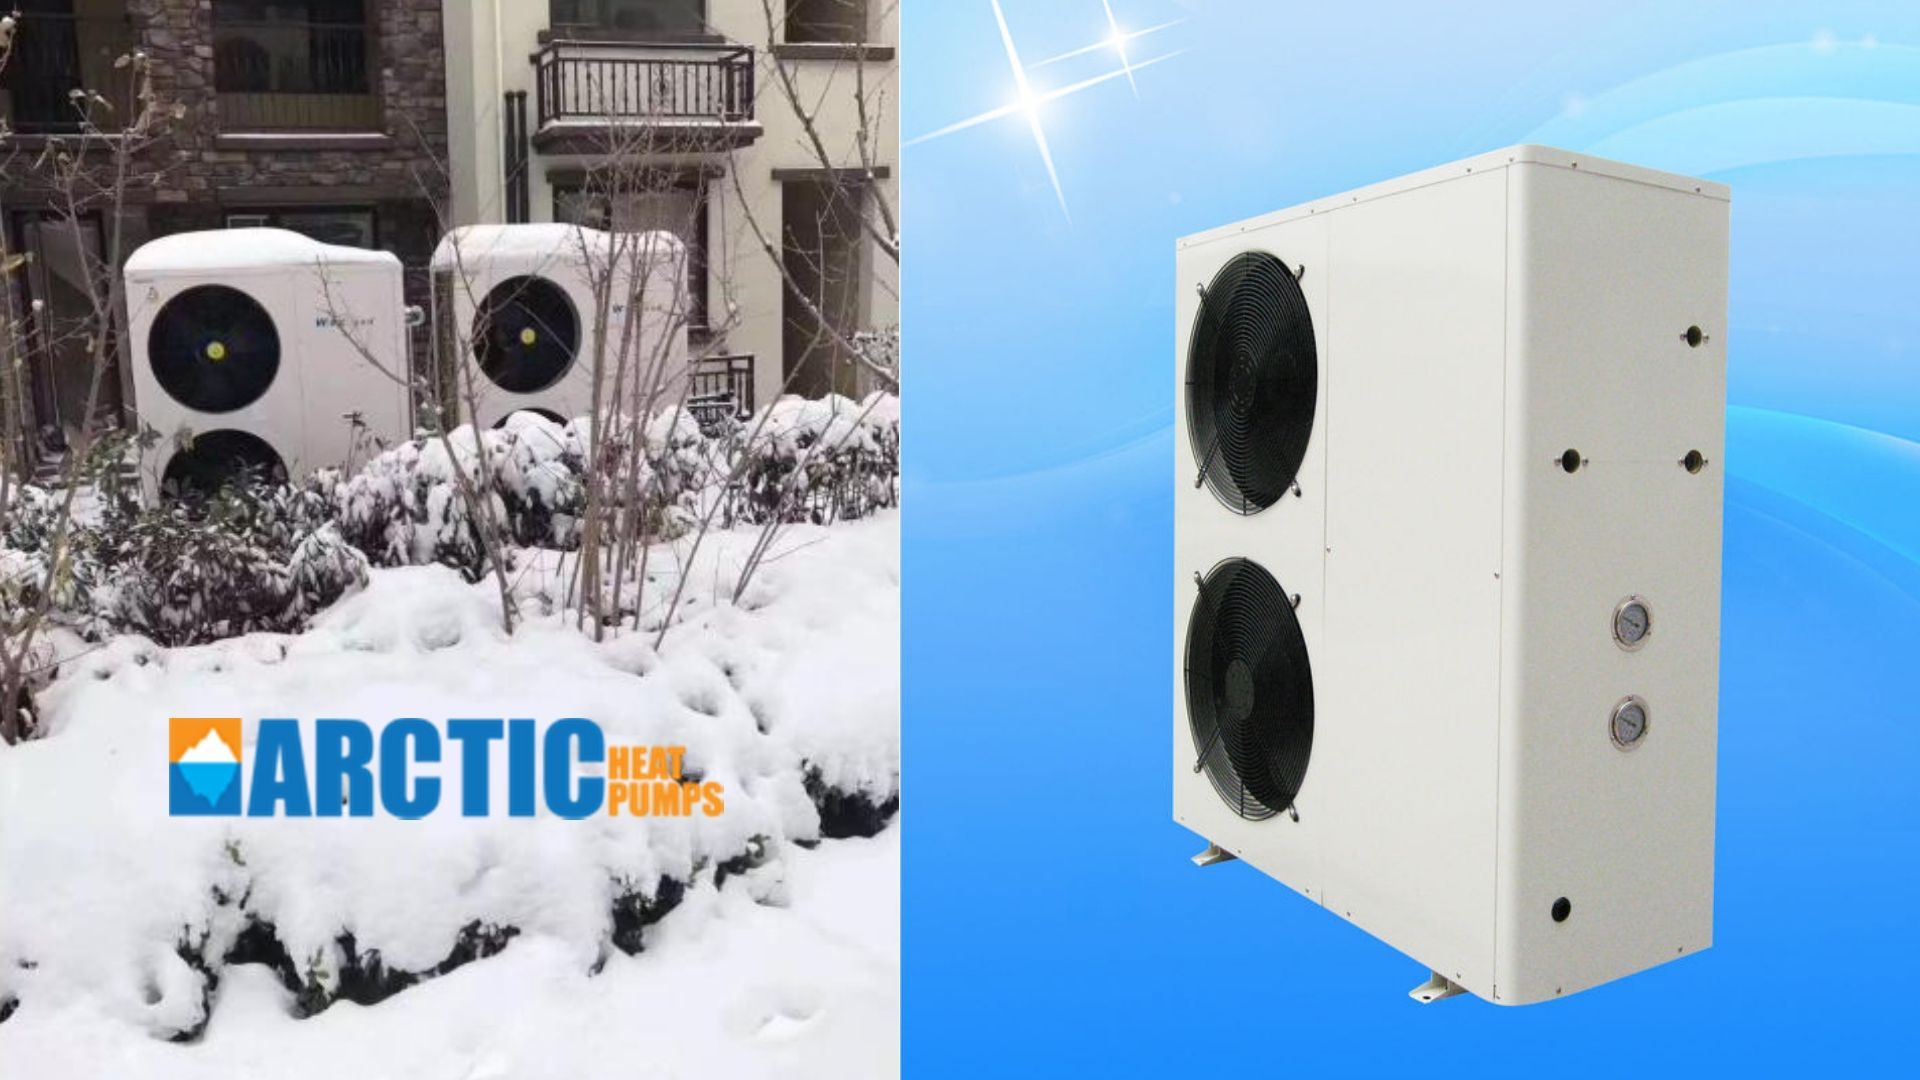 Do you want lowtemperatureheatpumps that are designed to